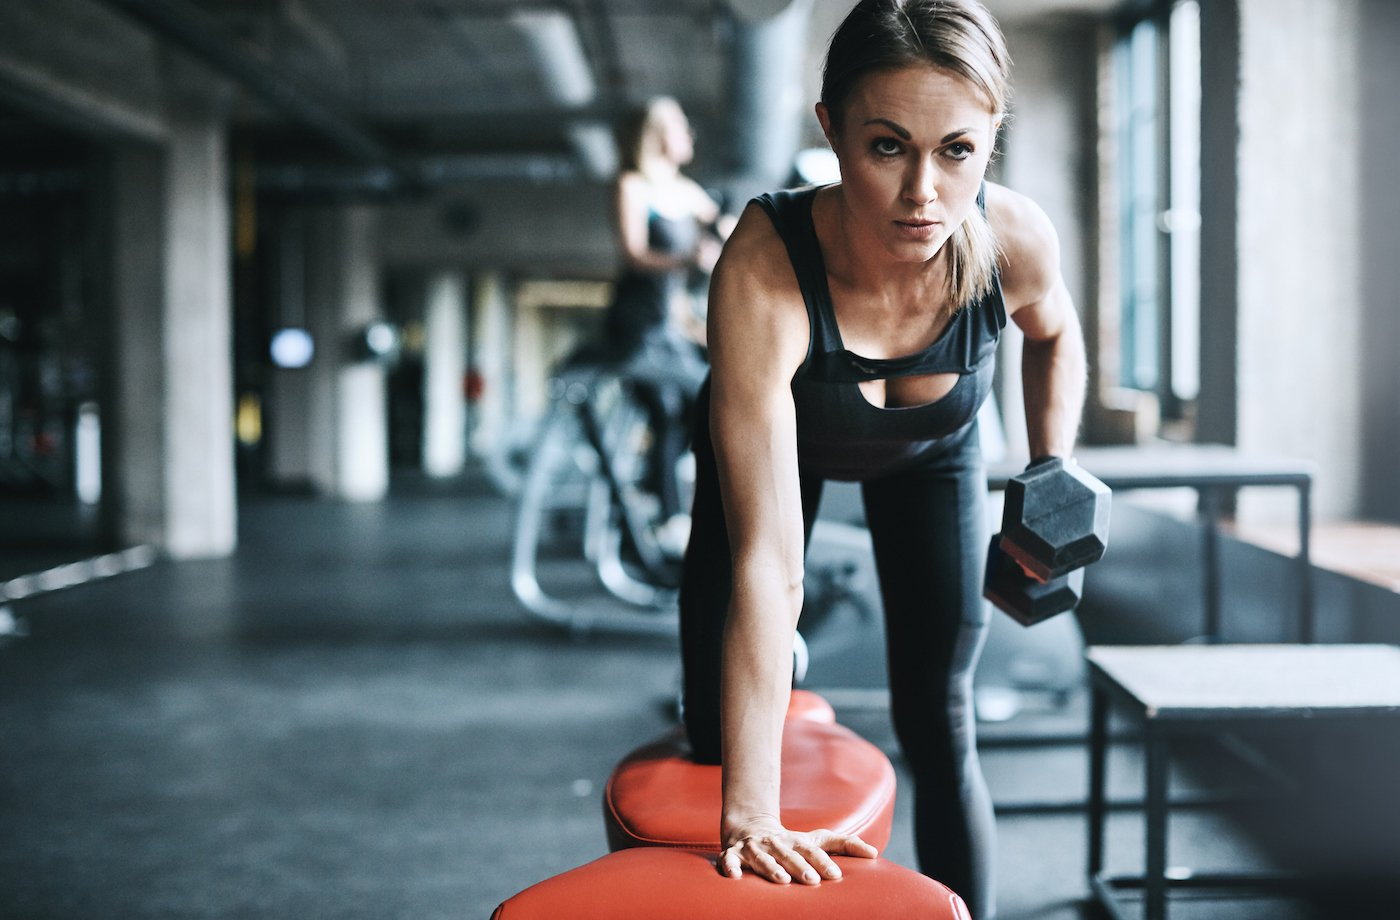 The key to future fitness gains might lie in your resting metabolic rate